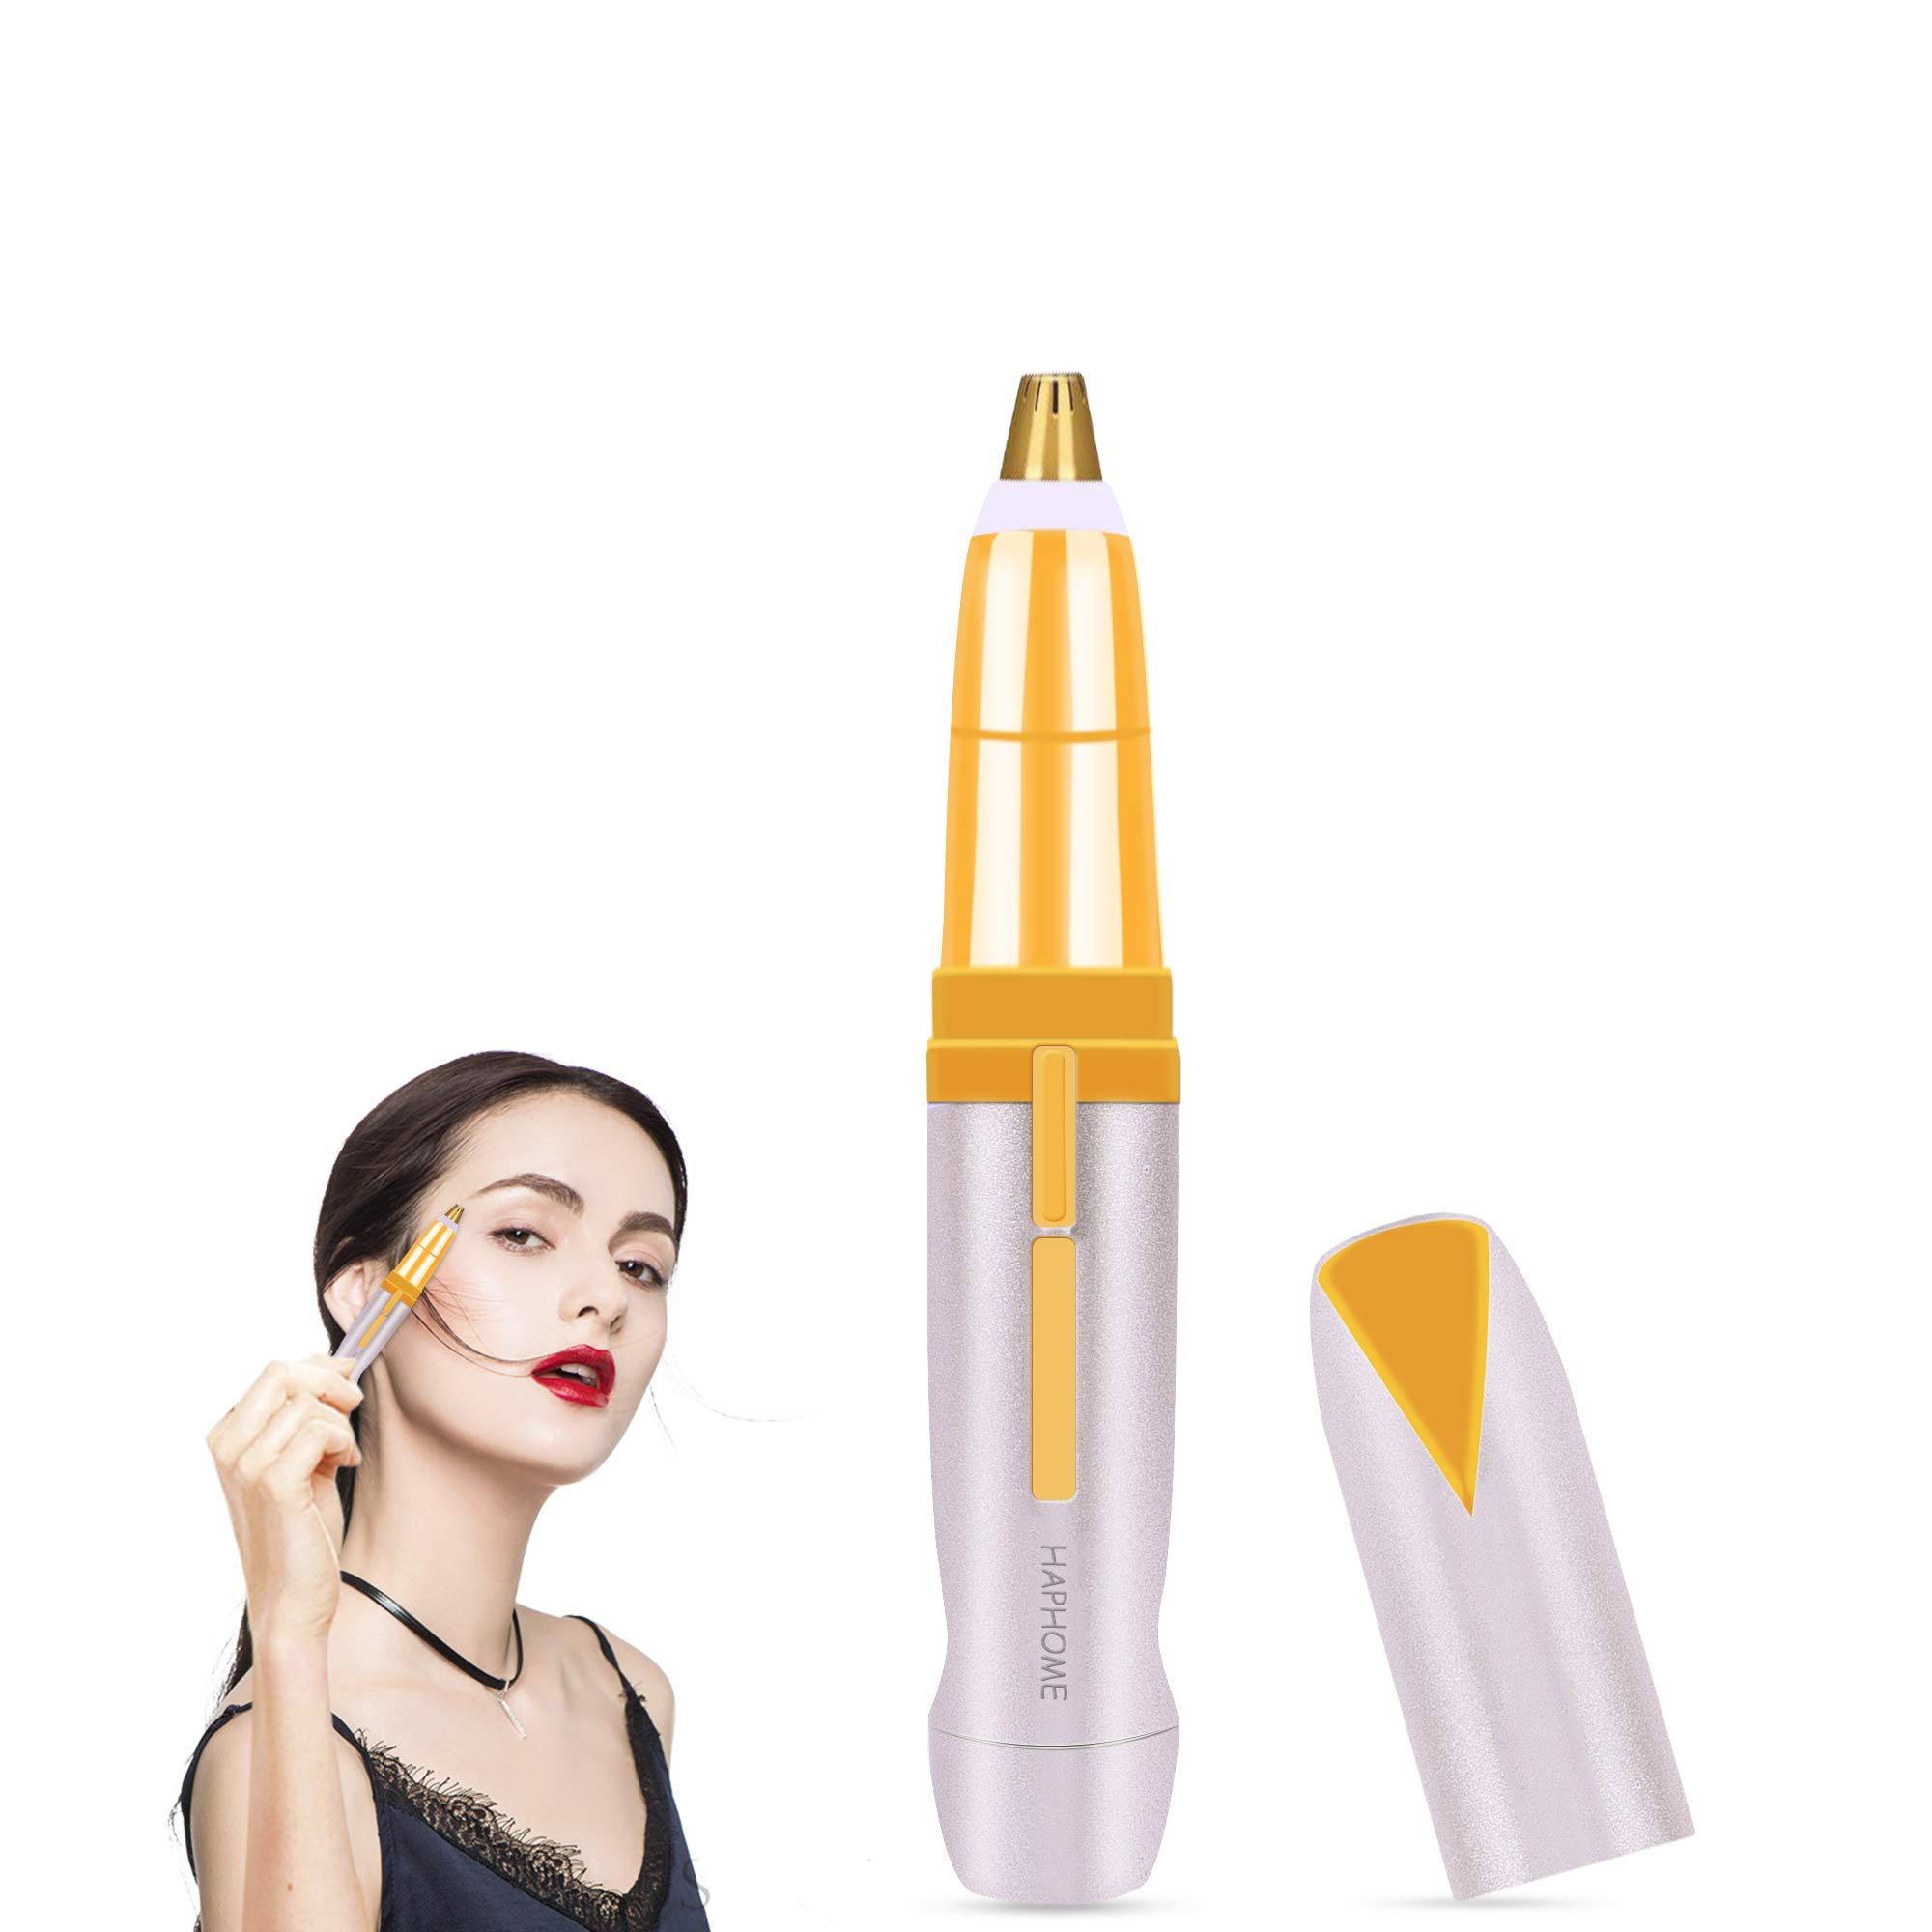 Haphome Painless Eyebrow Hair Remover for Women Best Eyebrow Trimmer, Protable Brows Hair Remover for Good Finishing and Well Touch (Silver)